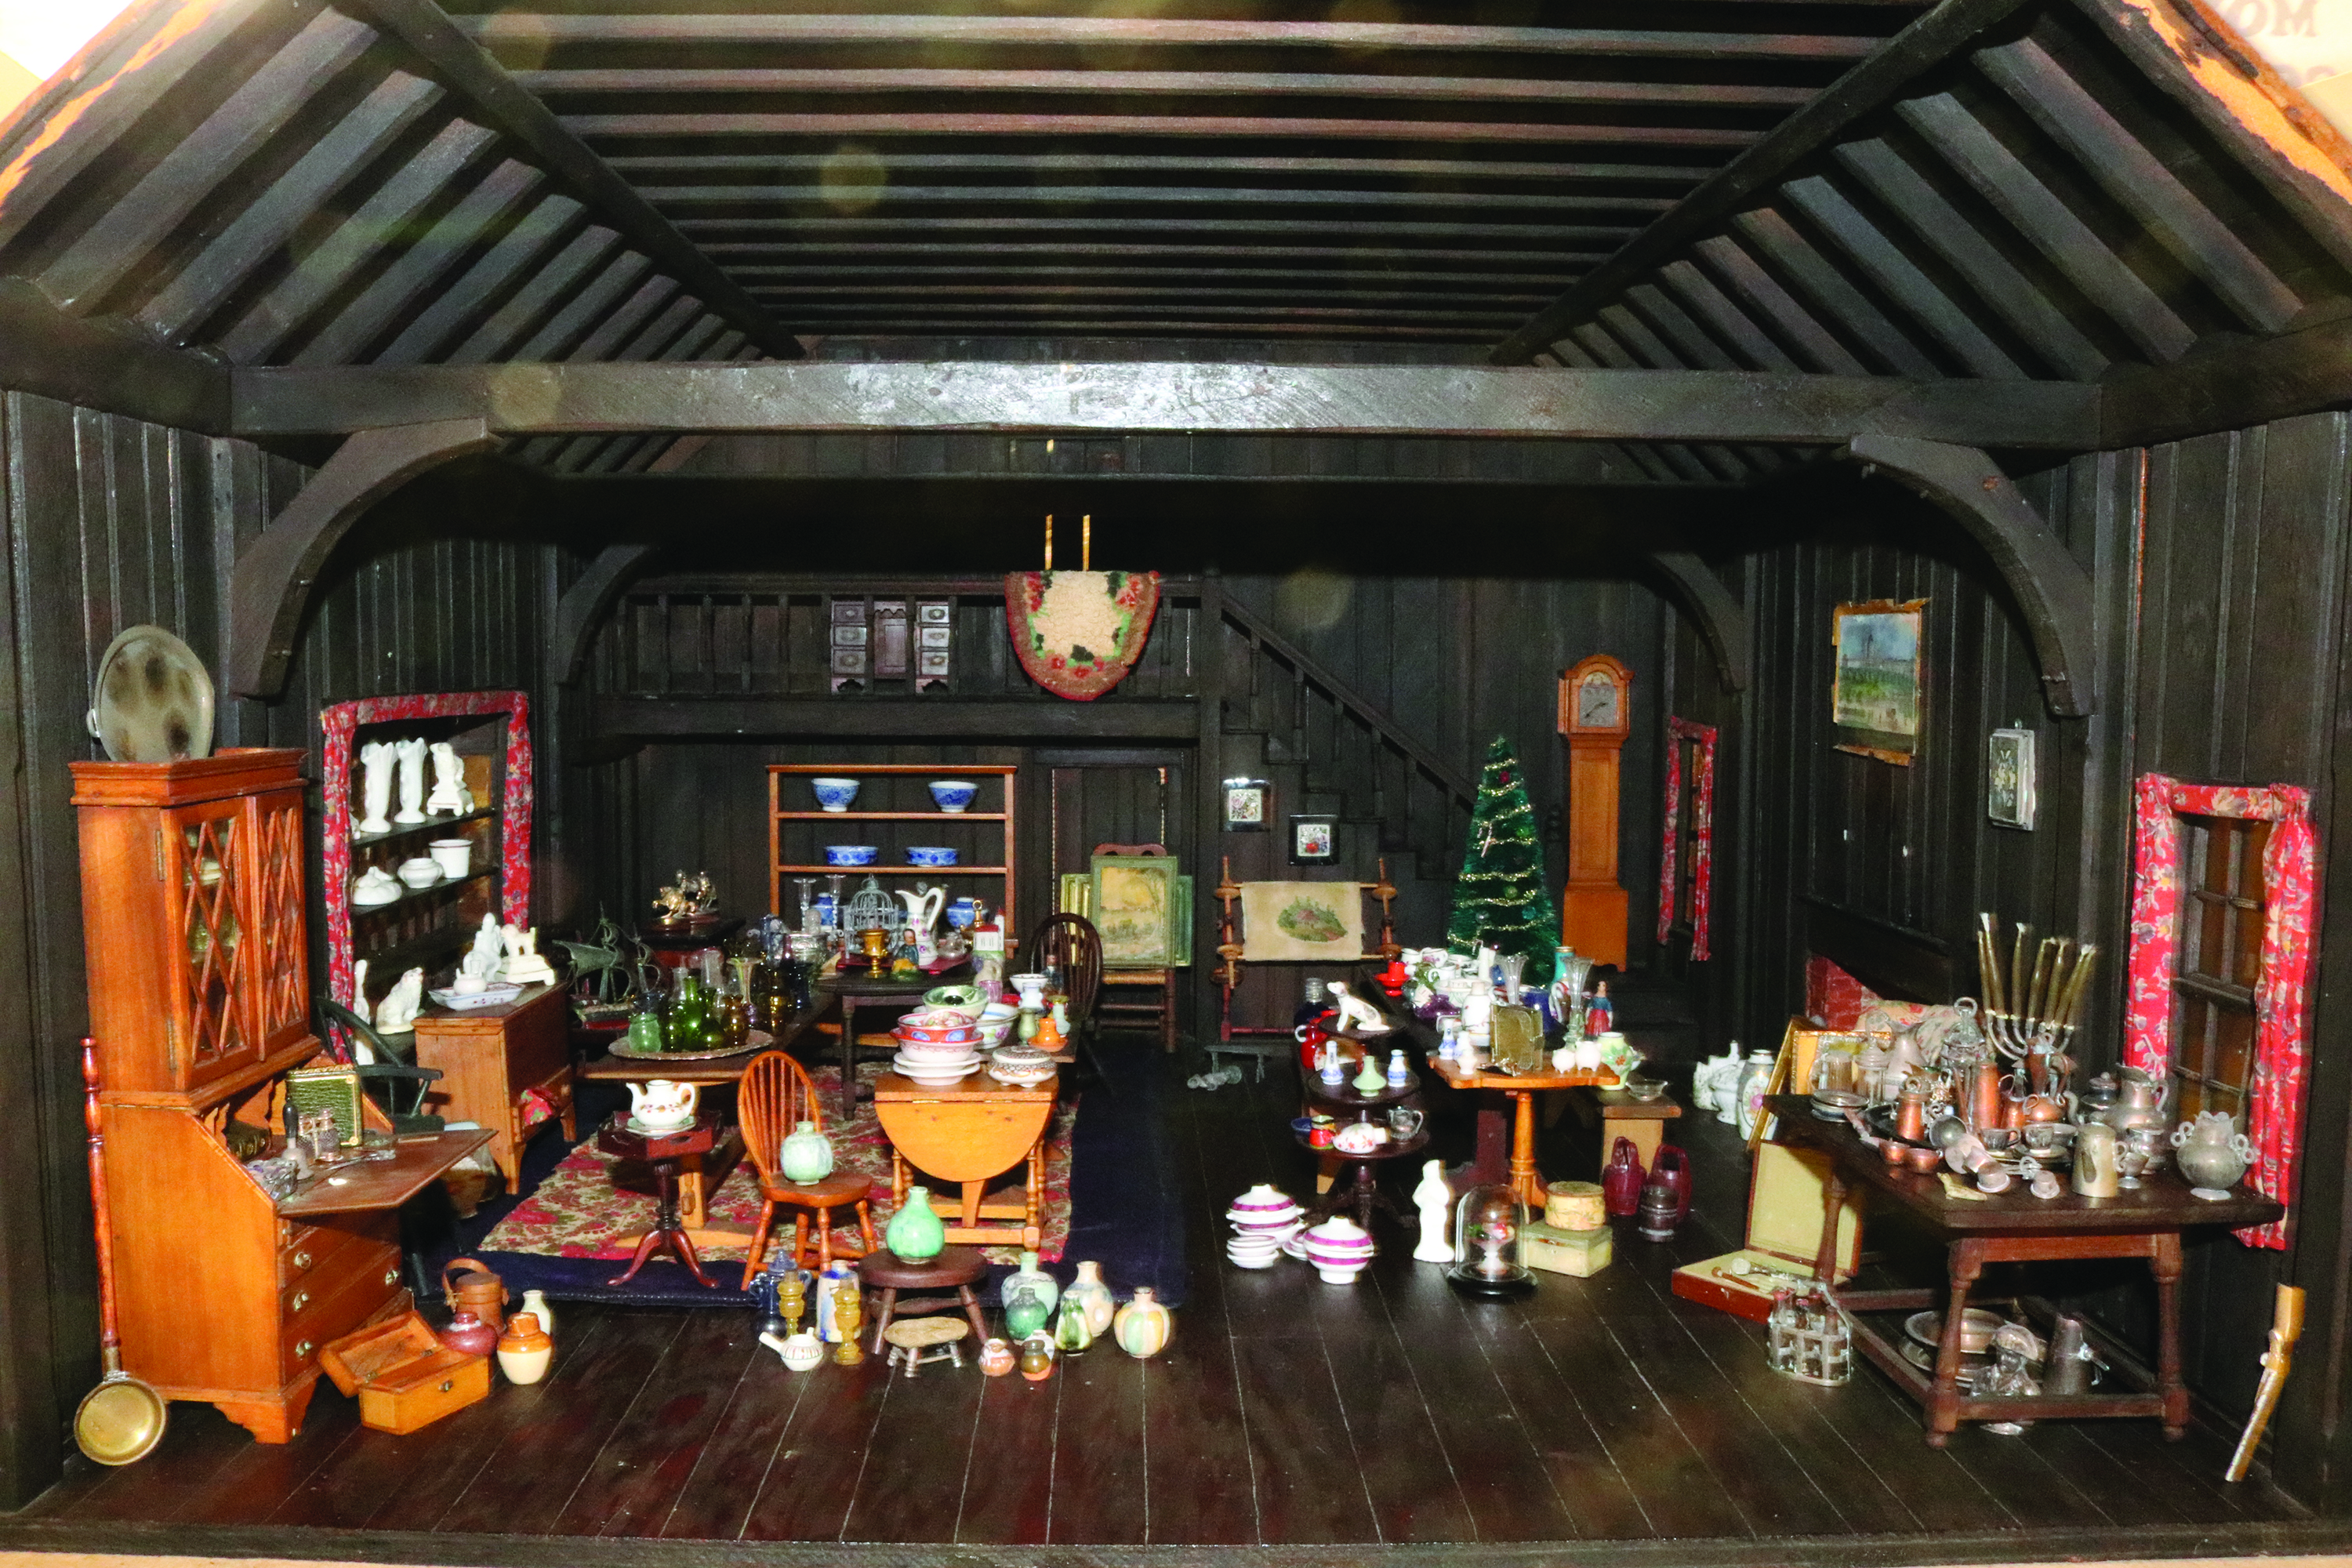 Miniature antique shop room by Frederick B. Hicks